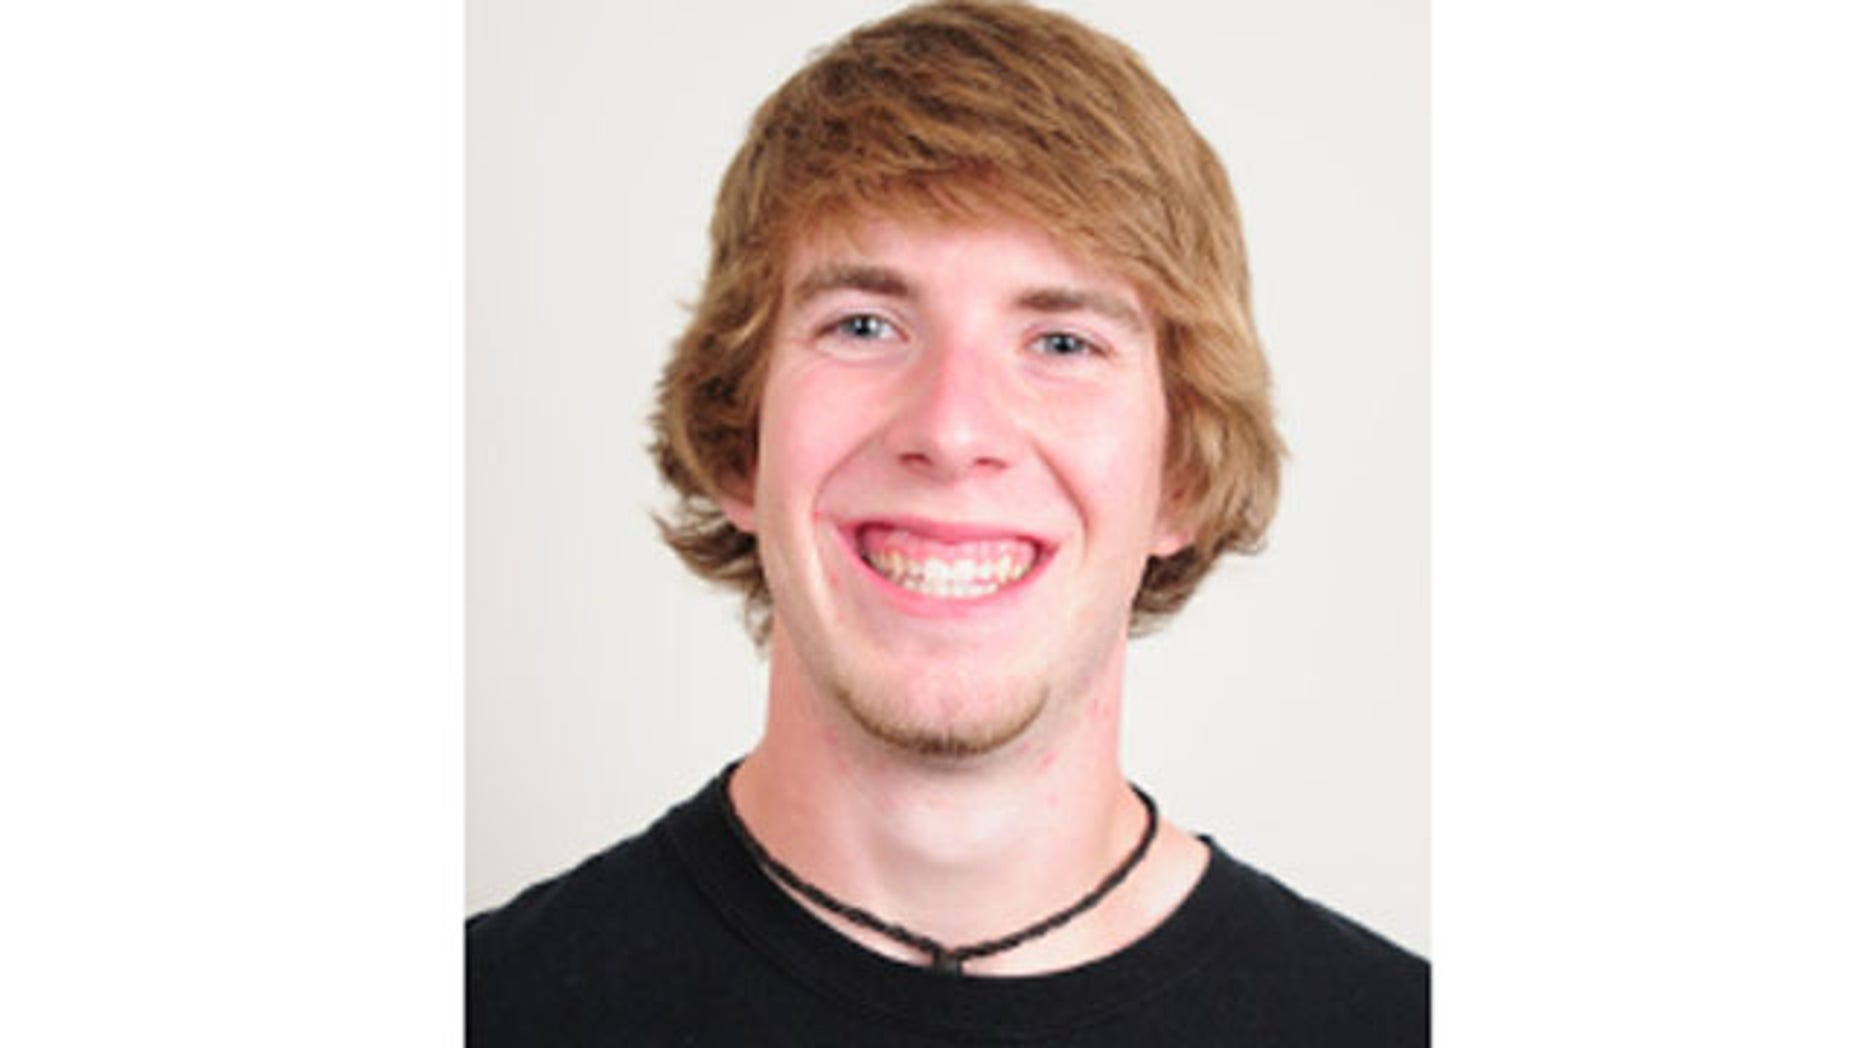 This photo provided by The Notre Dame Observer shows Declan Sullivan. Sullivan, a 20-year-old junior from Long Grove, Ill.